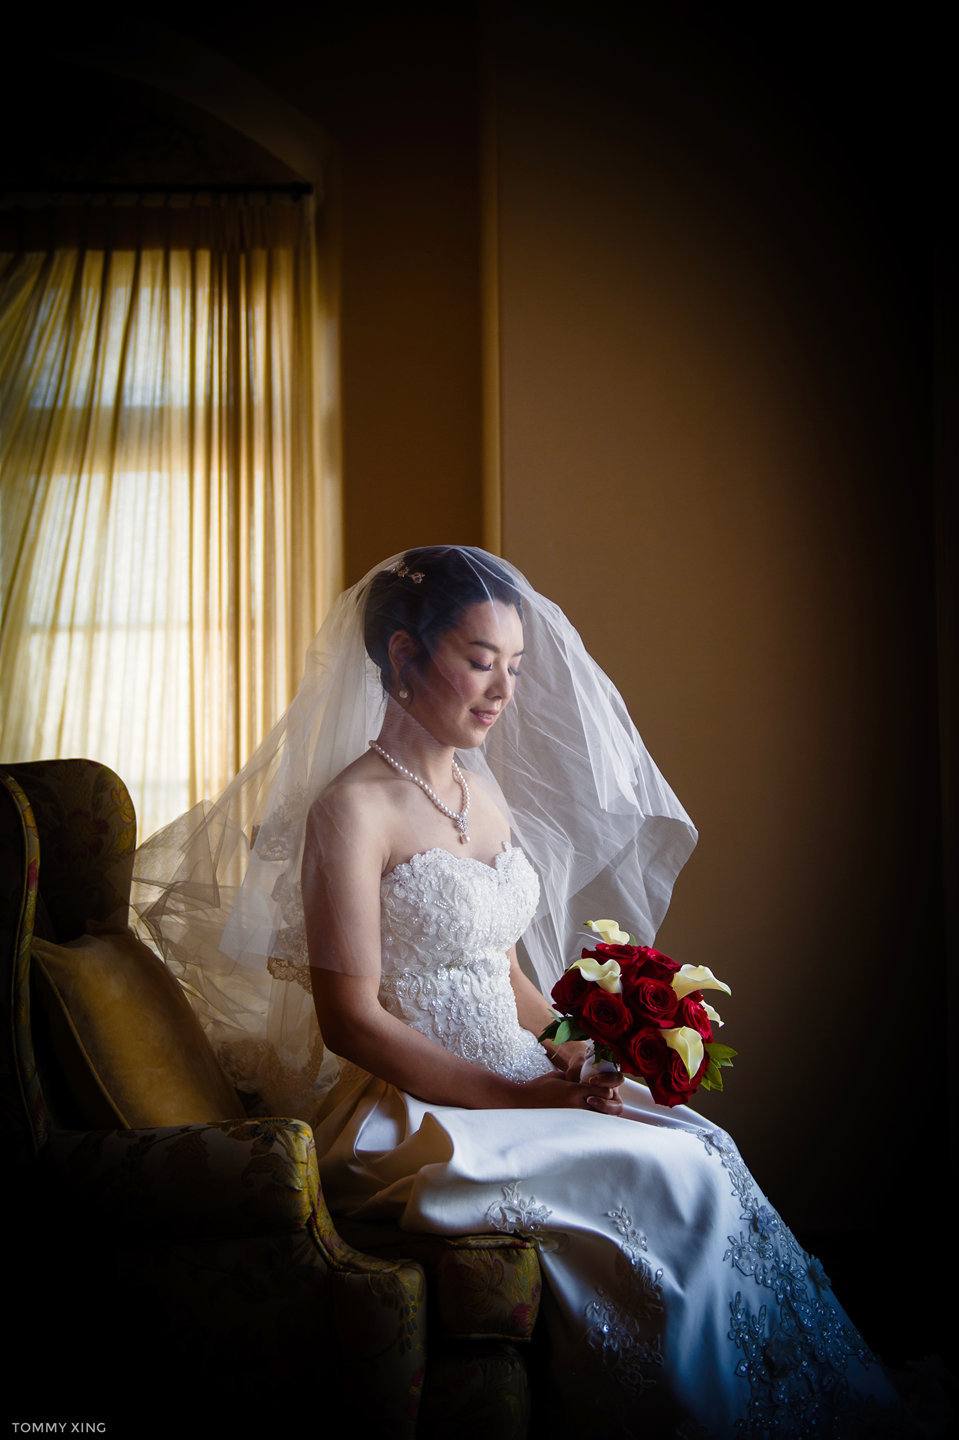 Los Angeles Wedding Photography Neighborhood Church Ranho Palos Verdes  Tommy Xing Photography 洛杉矶旧金山婚礼婚纱照摄影师013.jpg